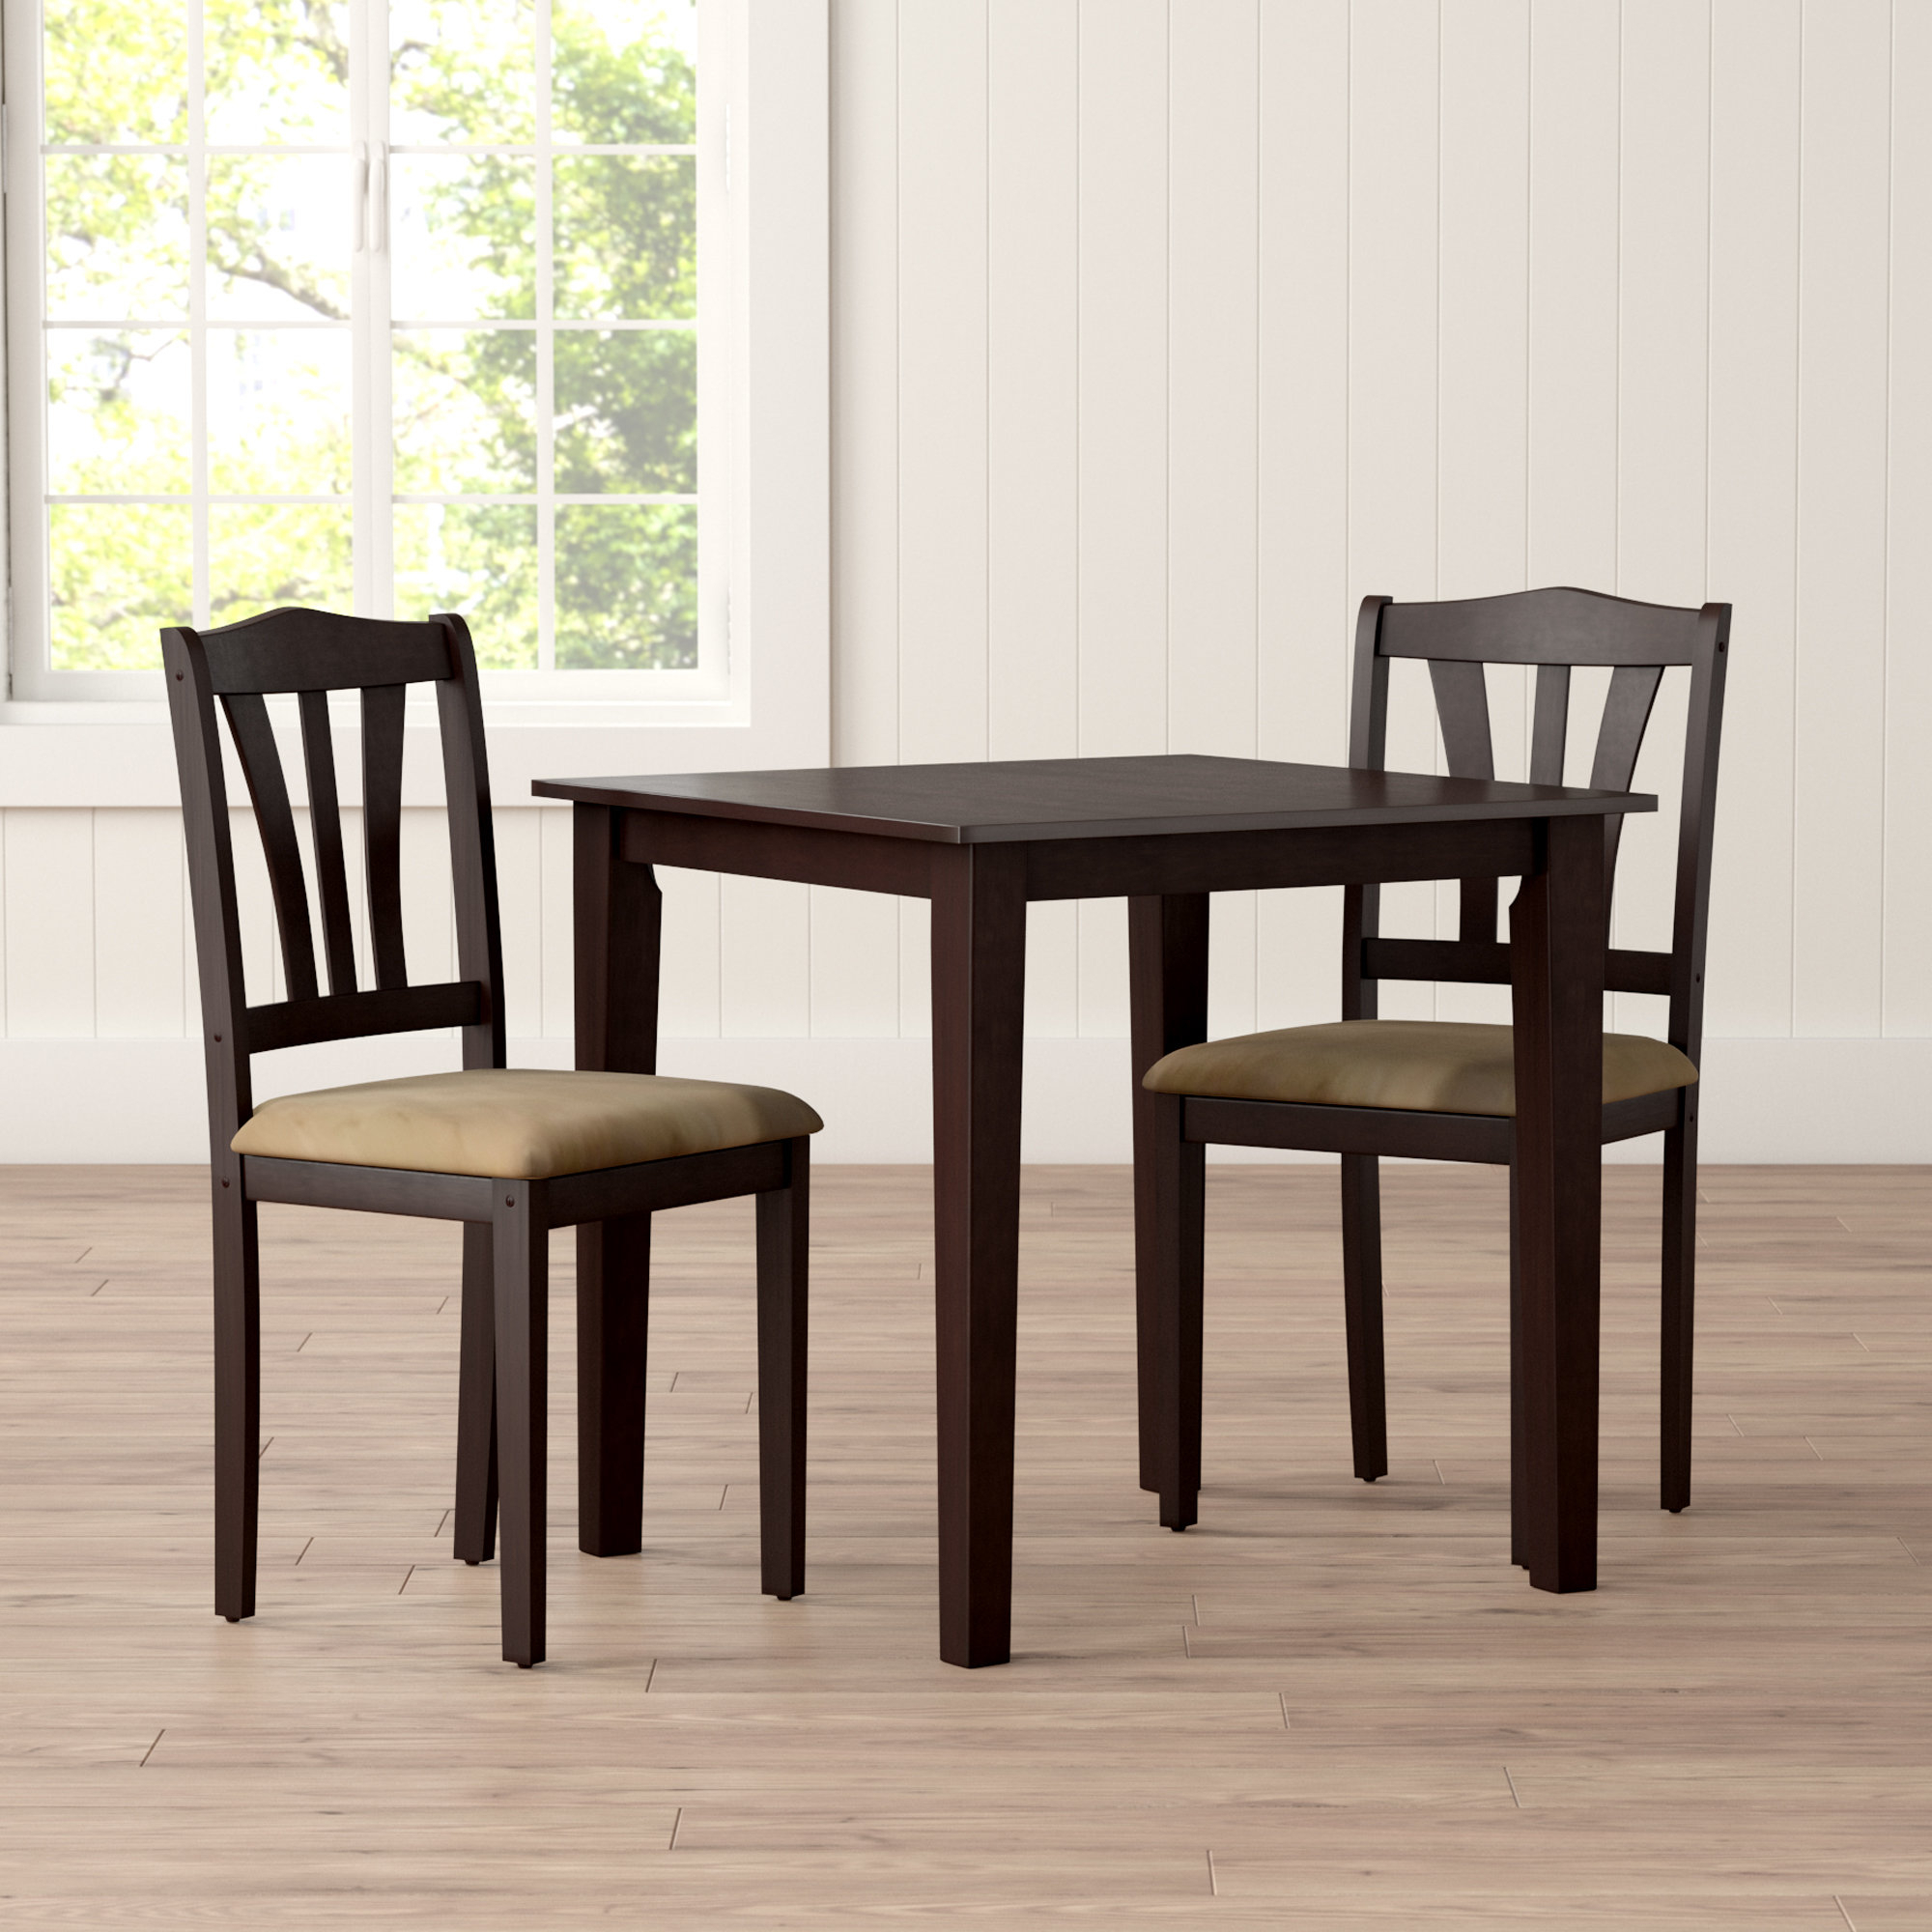 Baillie 3 Piece Dining Sets Throughout Best And Newest Dinah 3 Piece Dining Set (View 11 of 20)